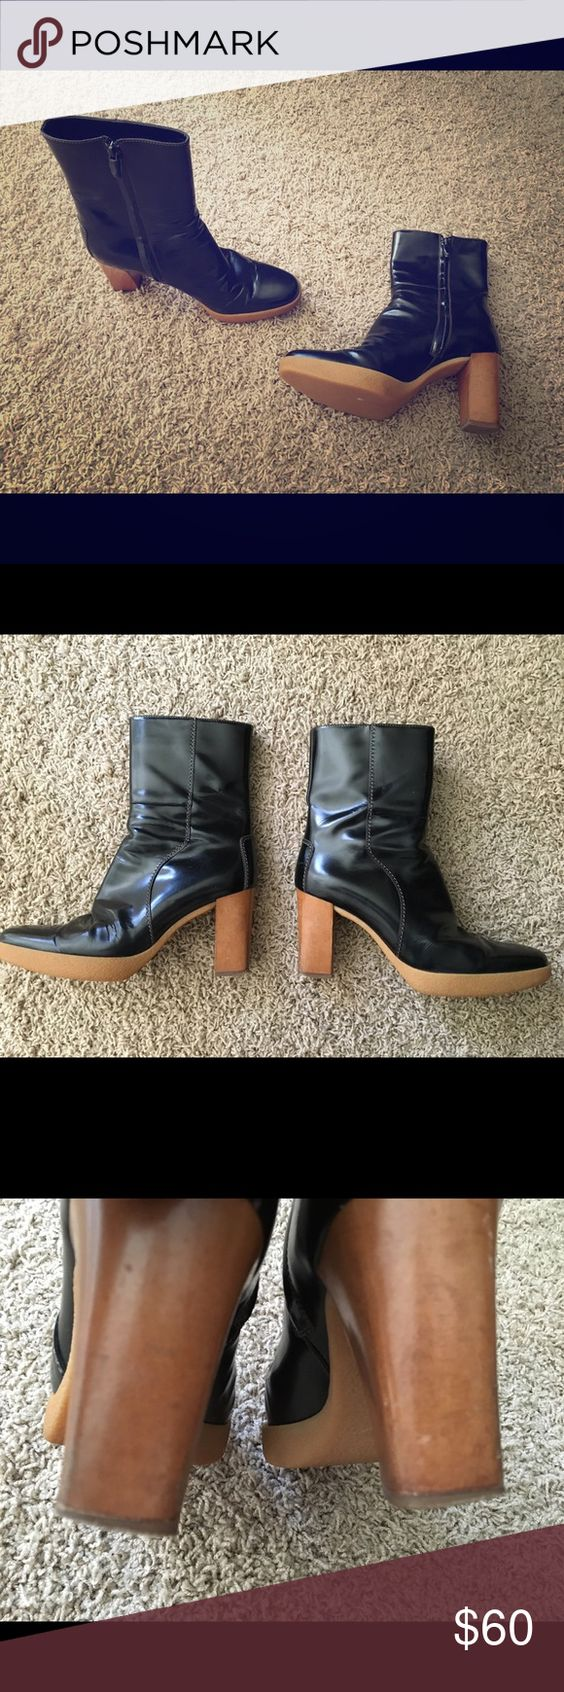 """Tod's Black Leather Rio Boots 7.5 Just beautiful! In good pre owned condition with some minor wrinkles in leather and wear on heel (see photos). These boots have a wood heel and rubber platform. Camel colored stitching on leather. Made in Italy. Heel measures 3.5""""'and raised platform is 1"""". Zips on side and super comfy! Box and shoe bag no longer available. Tod's Shoes Heeled Boots"""